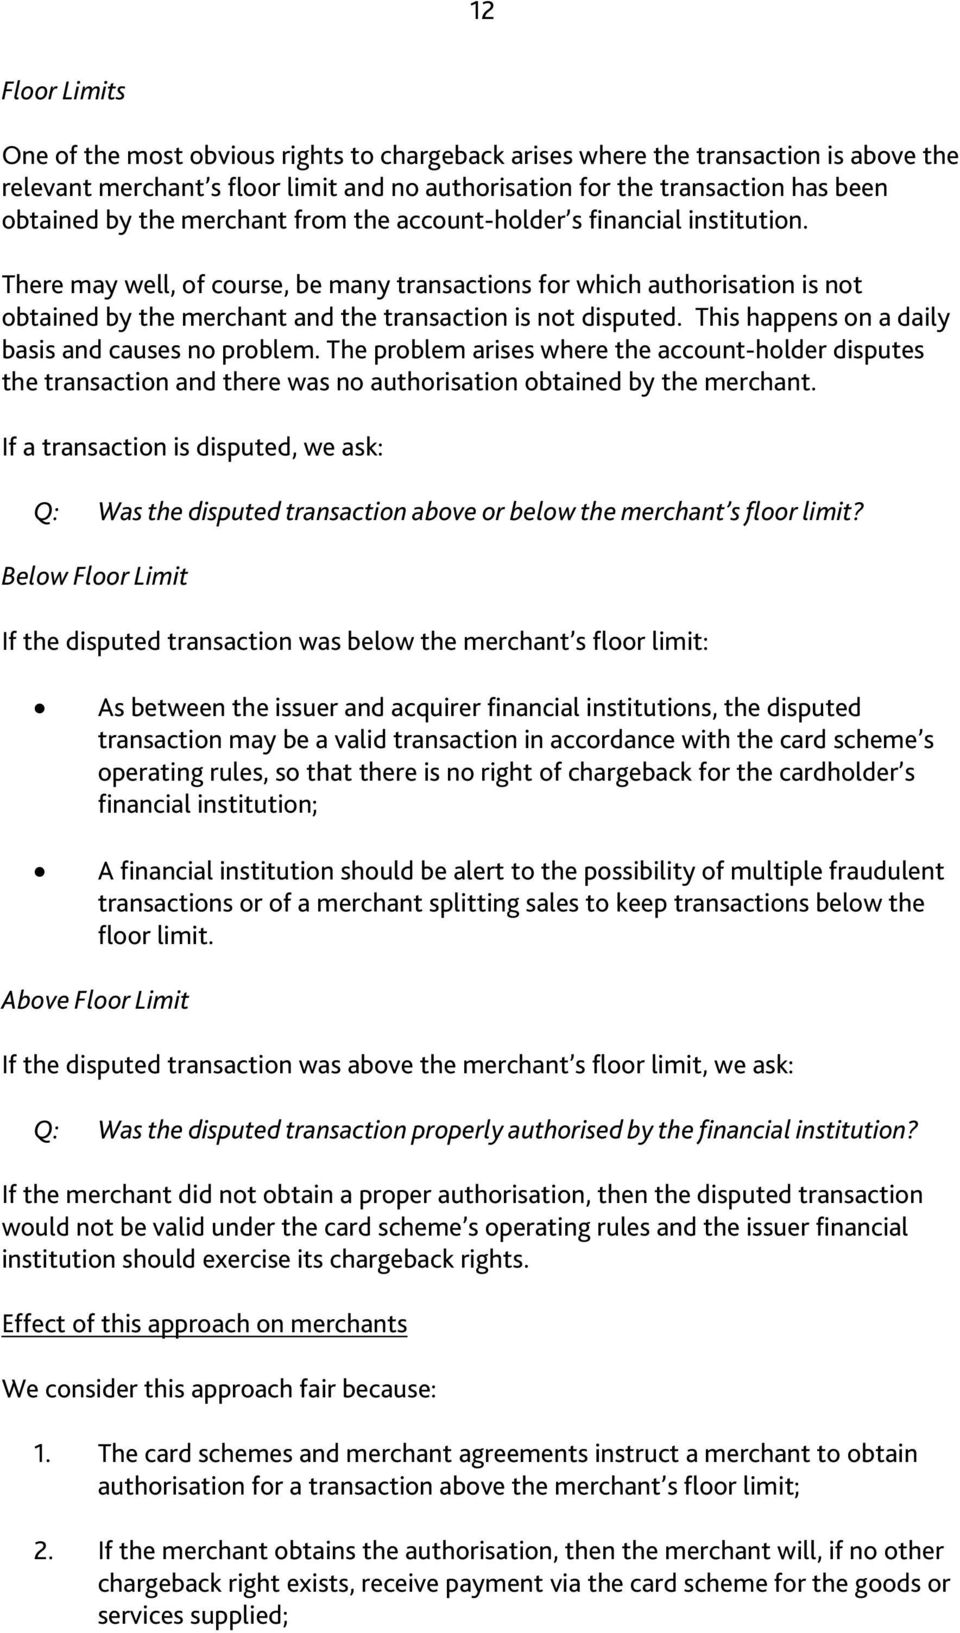 There may well, of course, be many transactions for which authorisation is not obtained by the merchant and the transaction is not disputed. This happens on a daily basis and causes no problem.